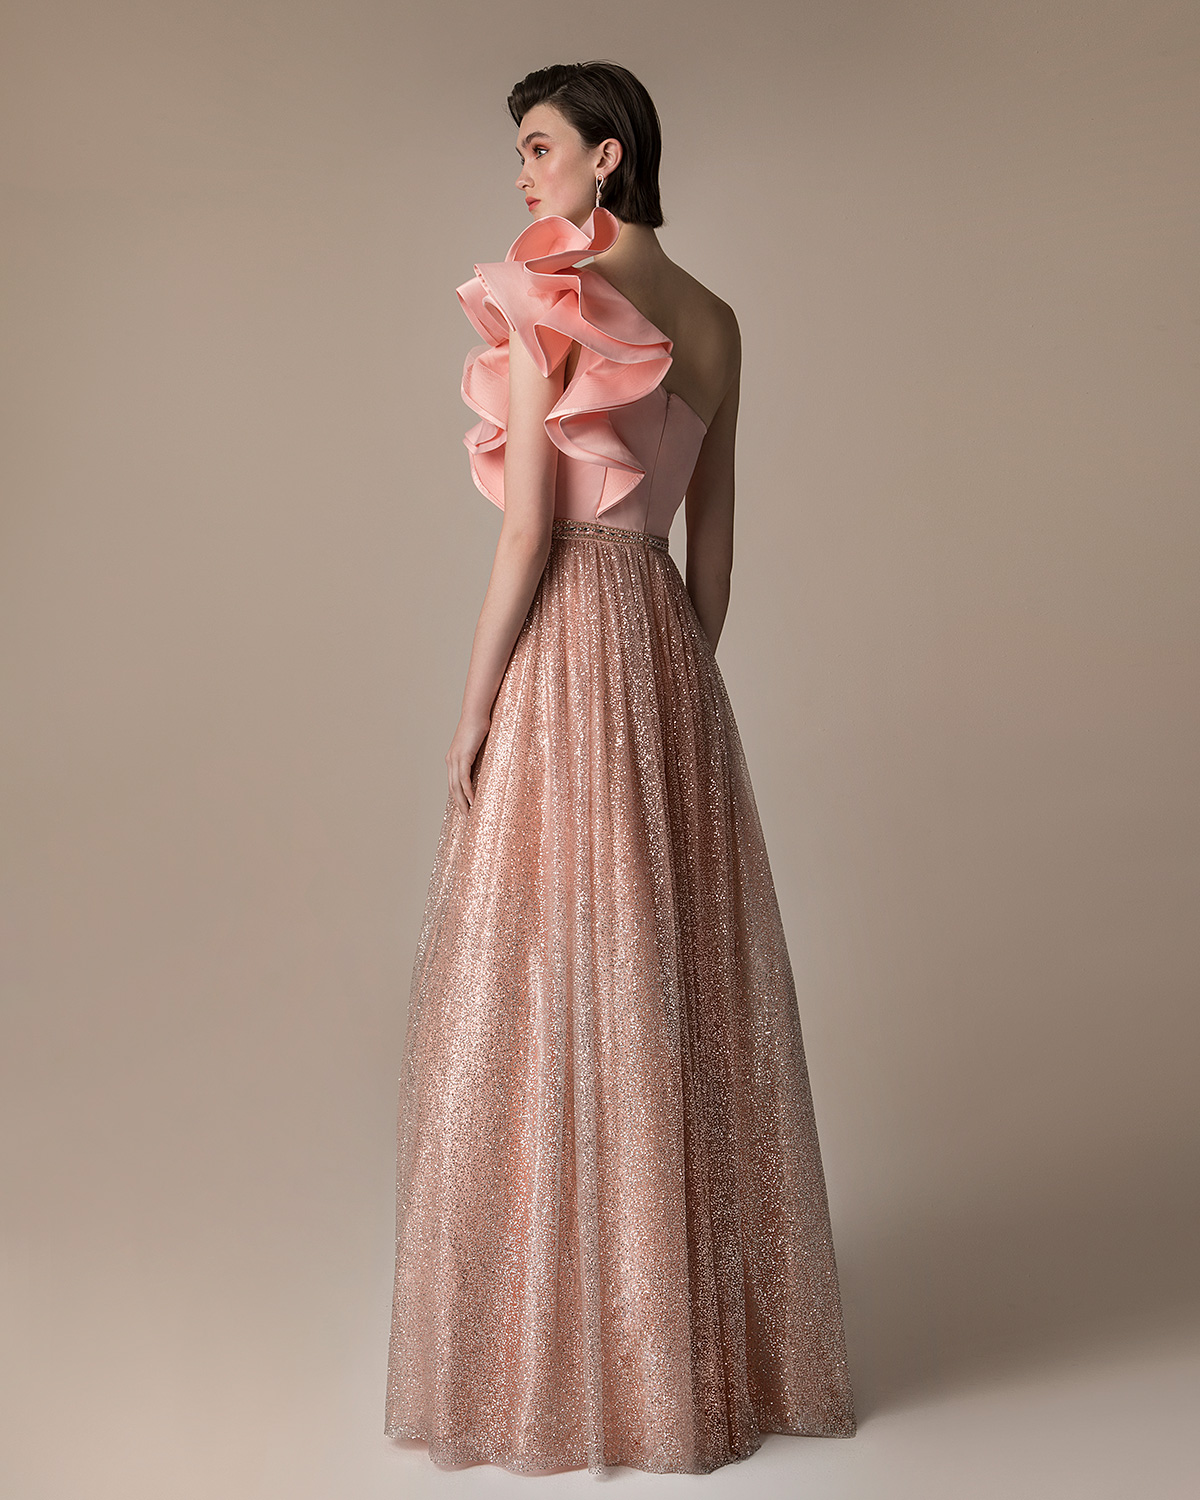 Evening Dresses / One shoulder evening dress with glitter